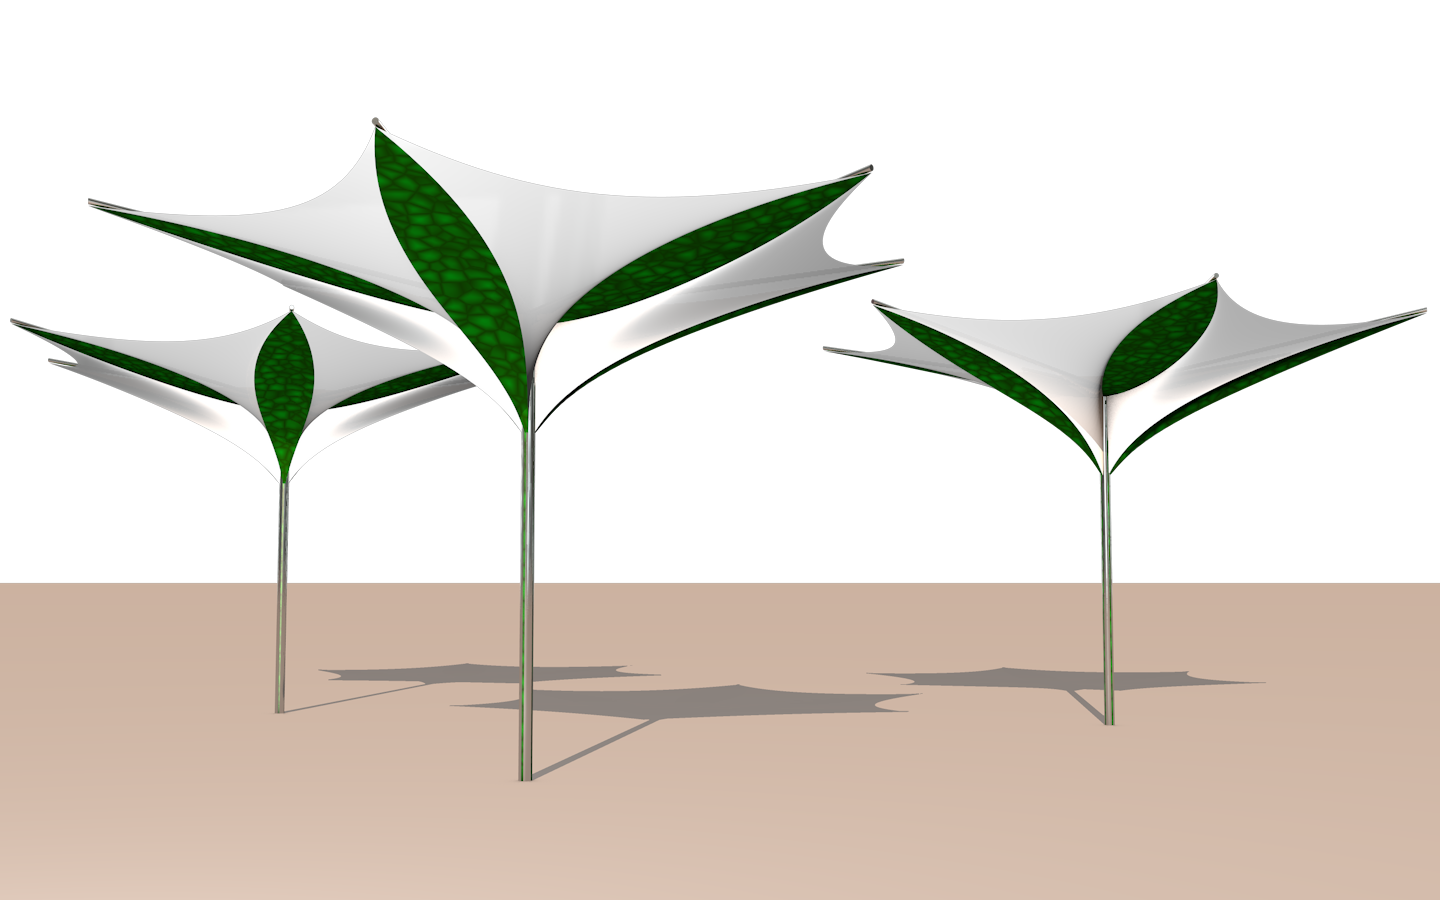 Image Source: Tensile Evolution